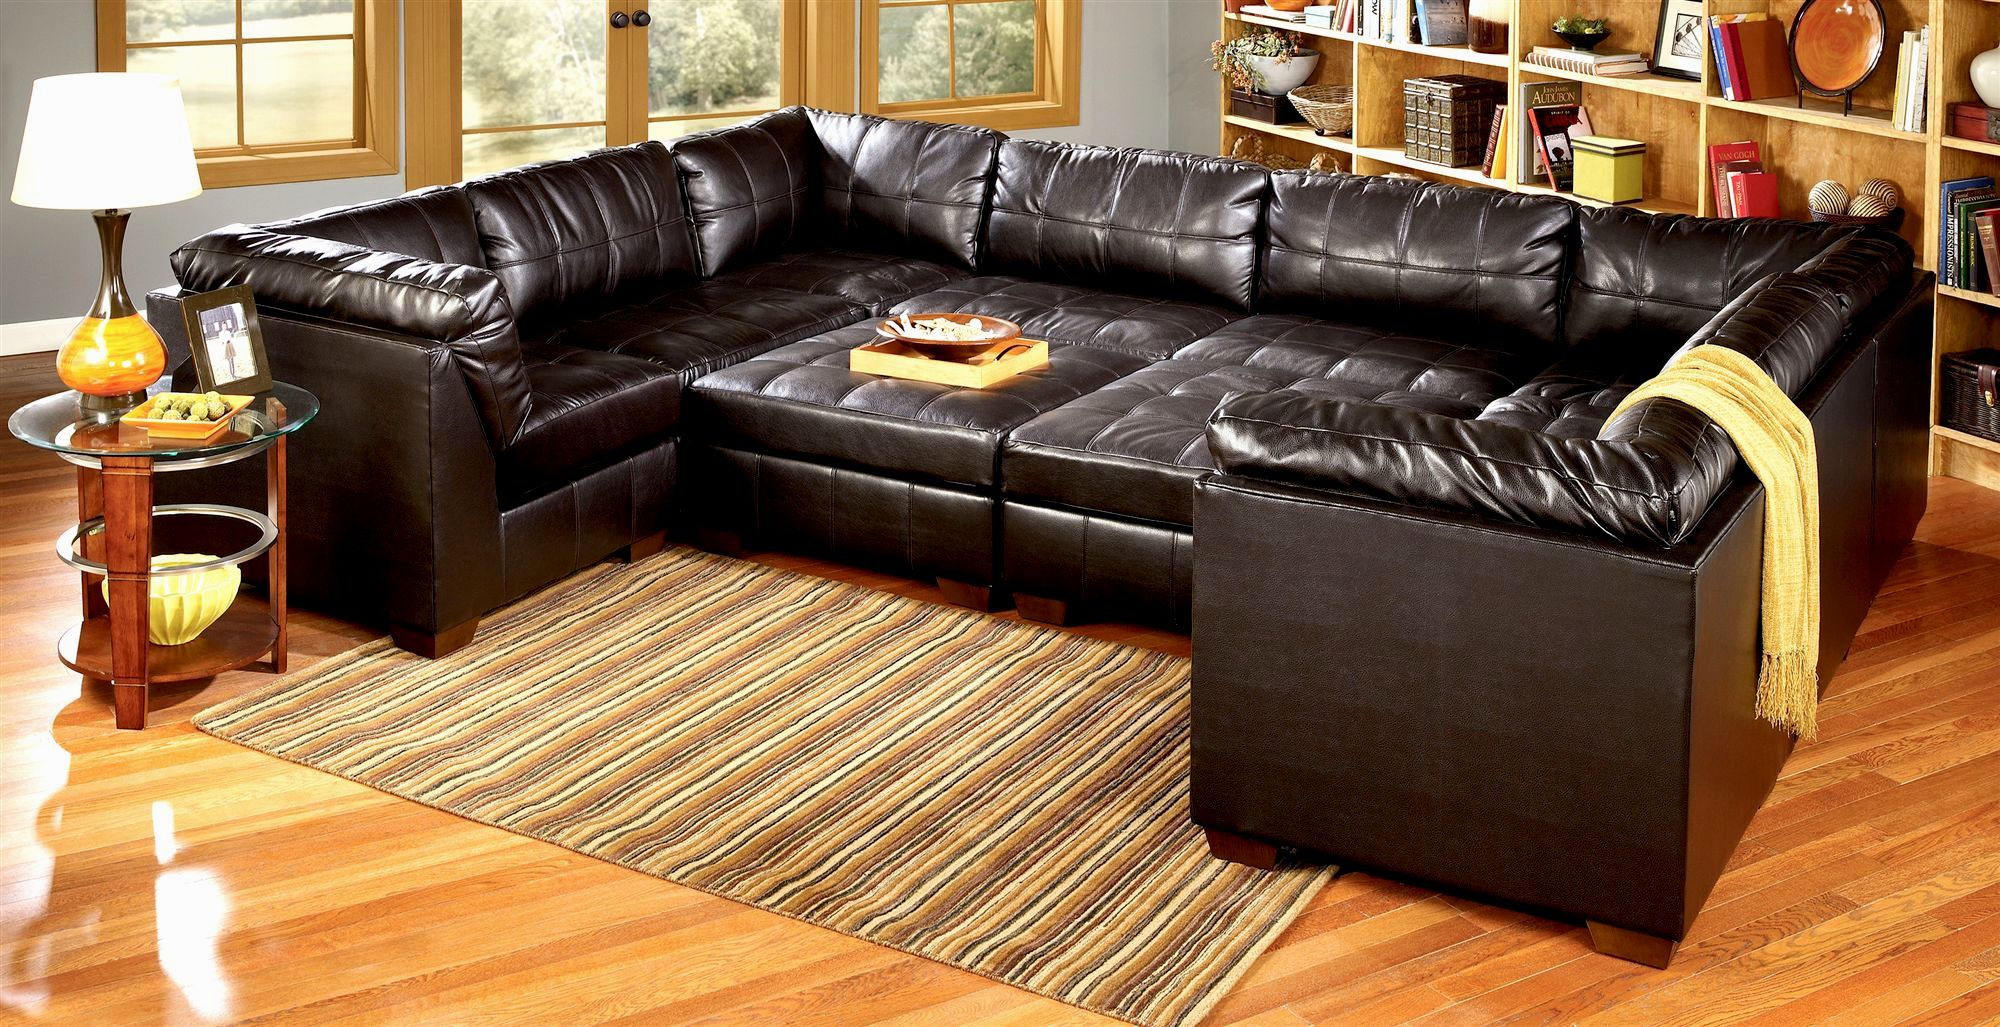 incredible leather modular sofa ideas-Finest Leather Modular sofa Collection